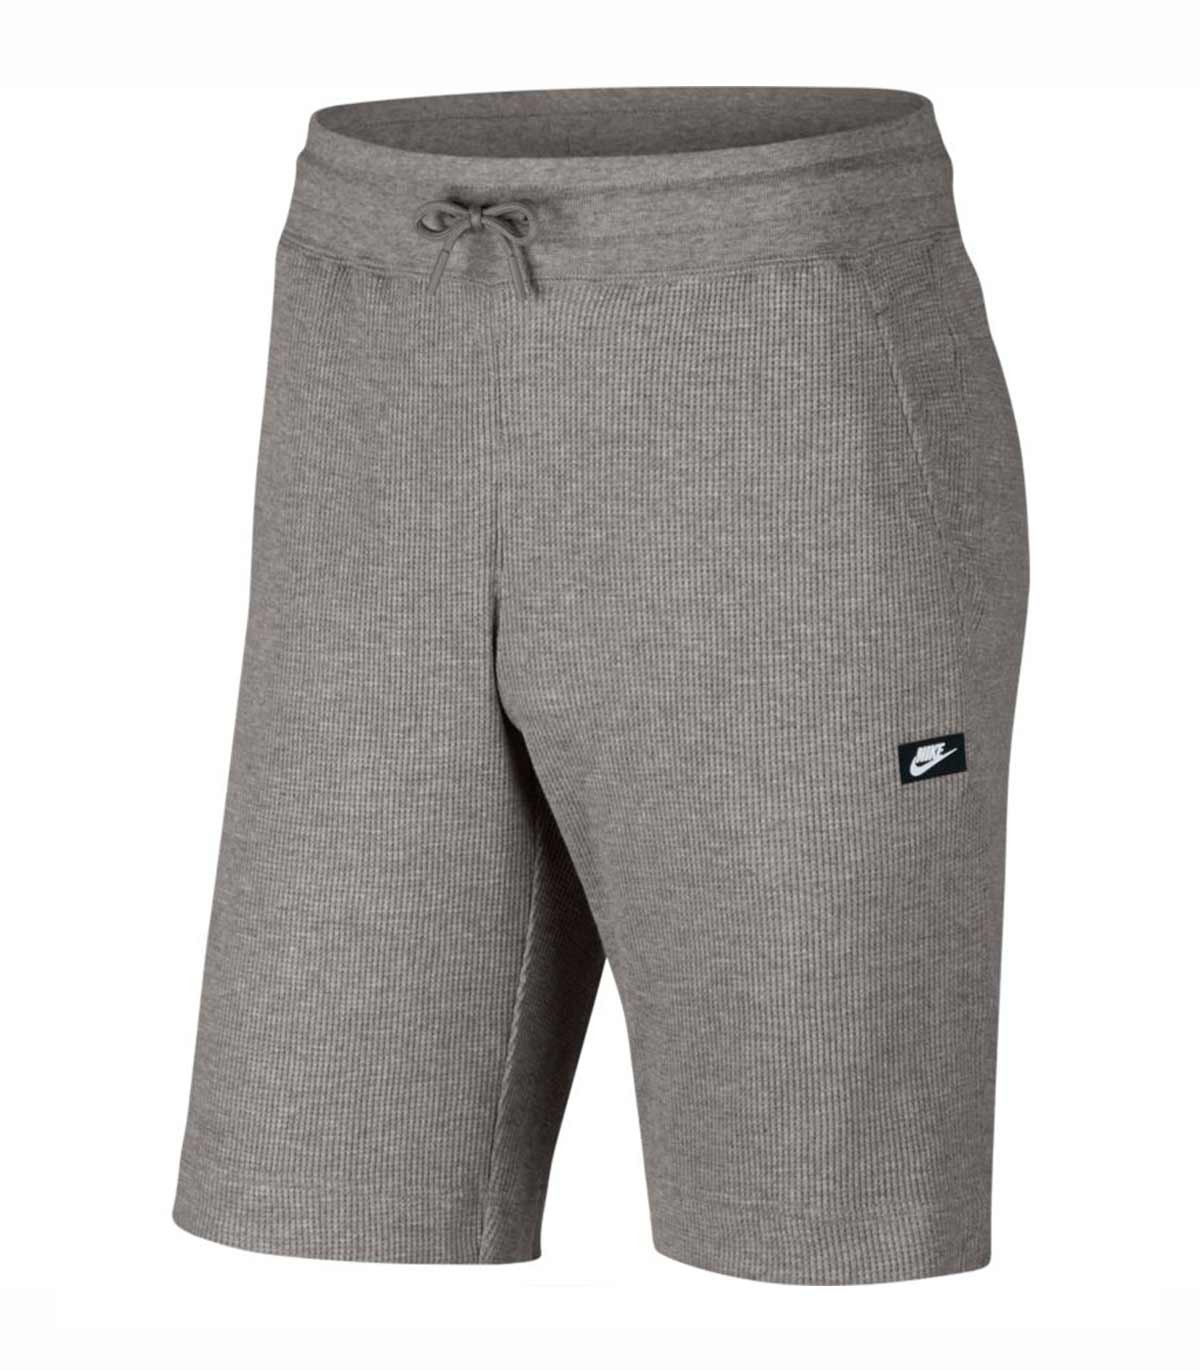 Nike NSW Waffle Short Grey-White-Black